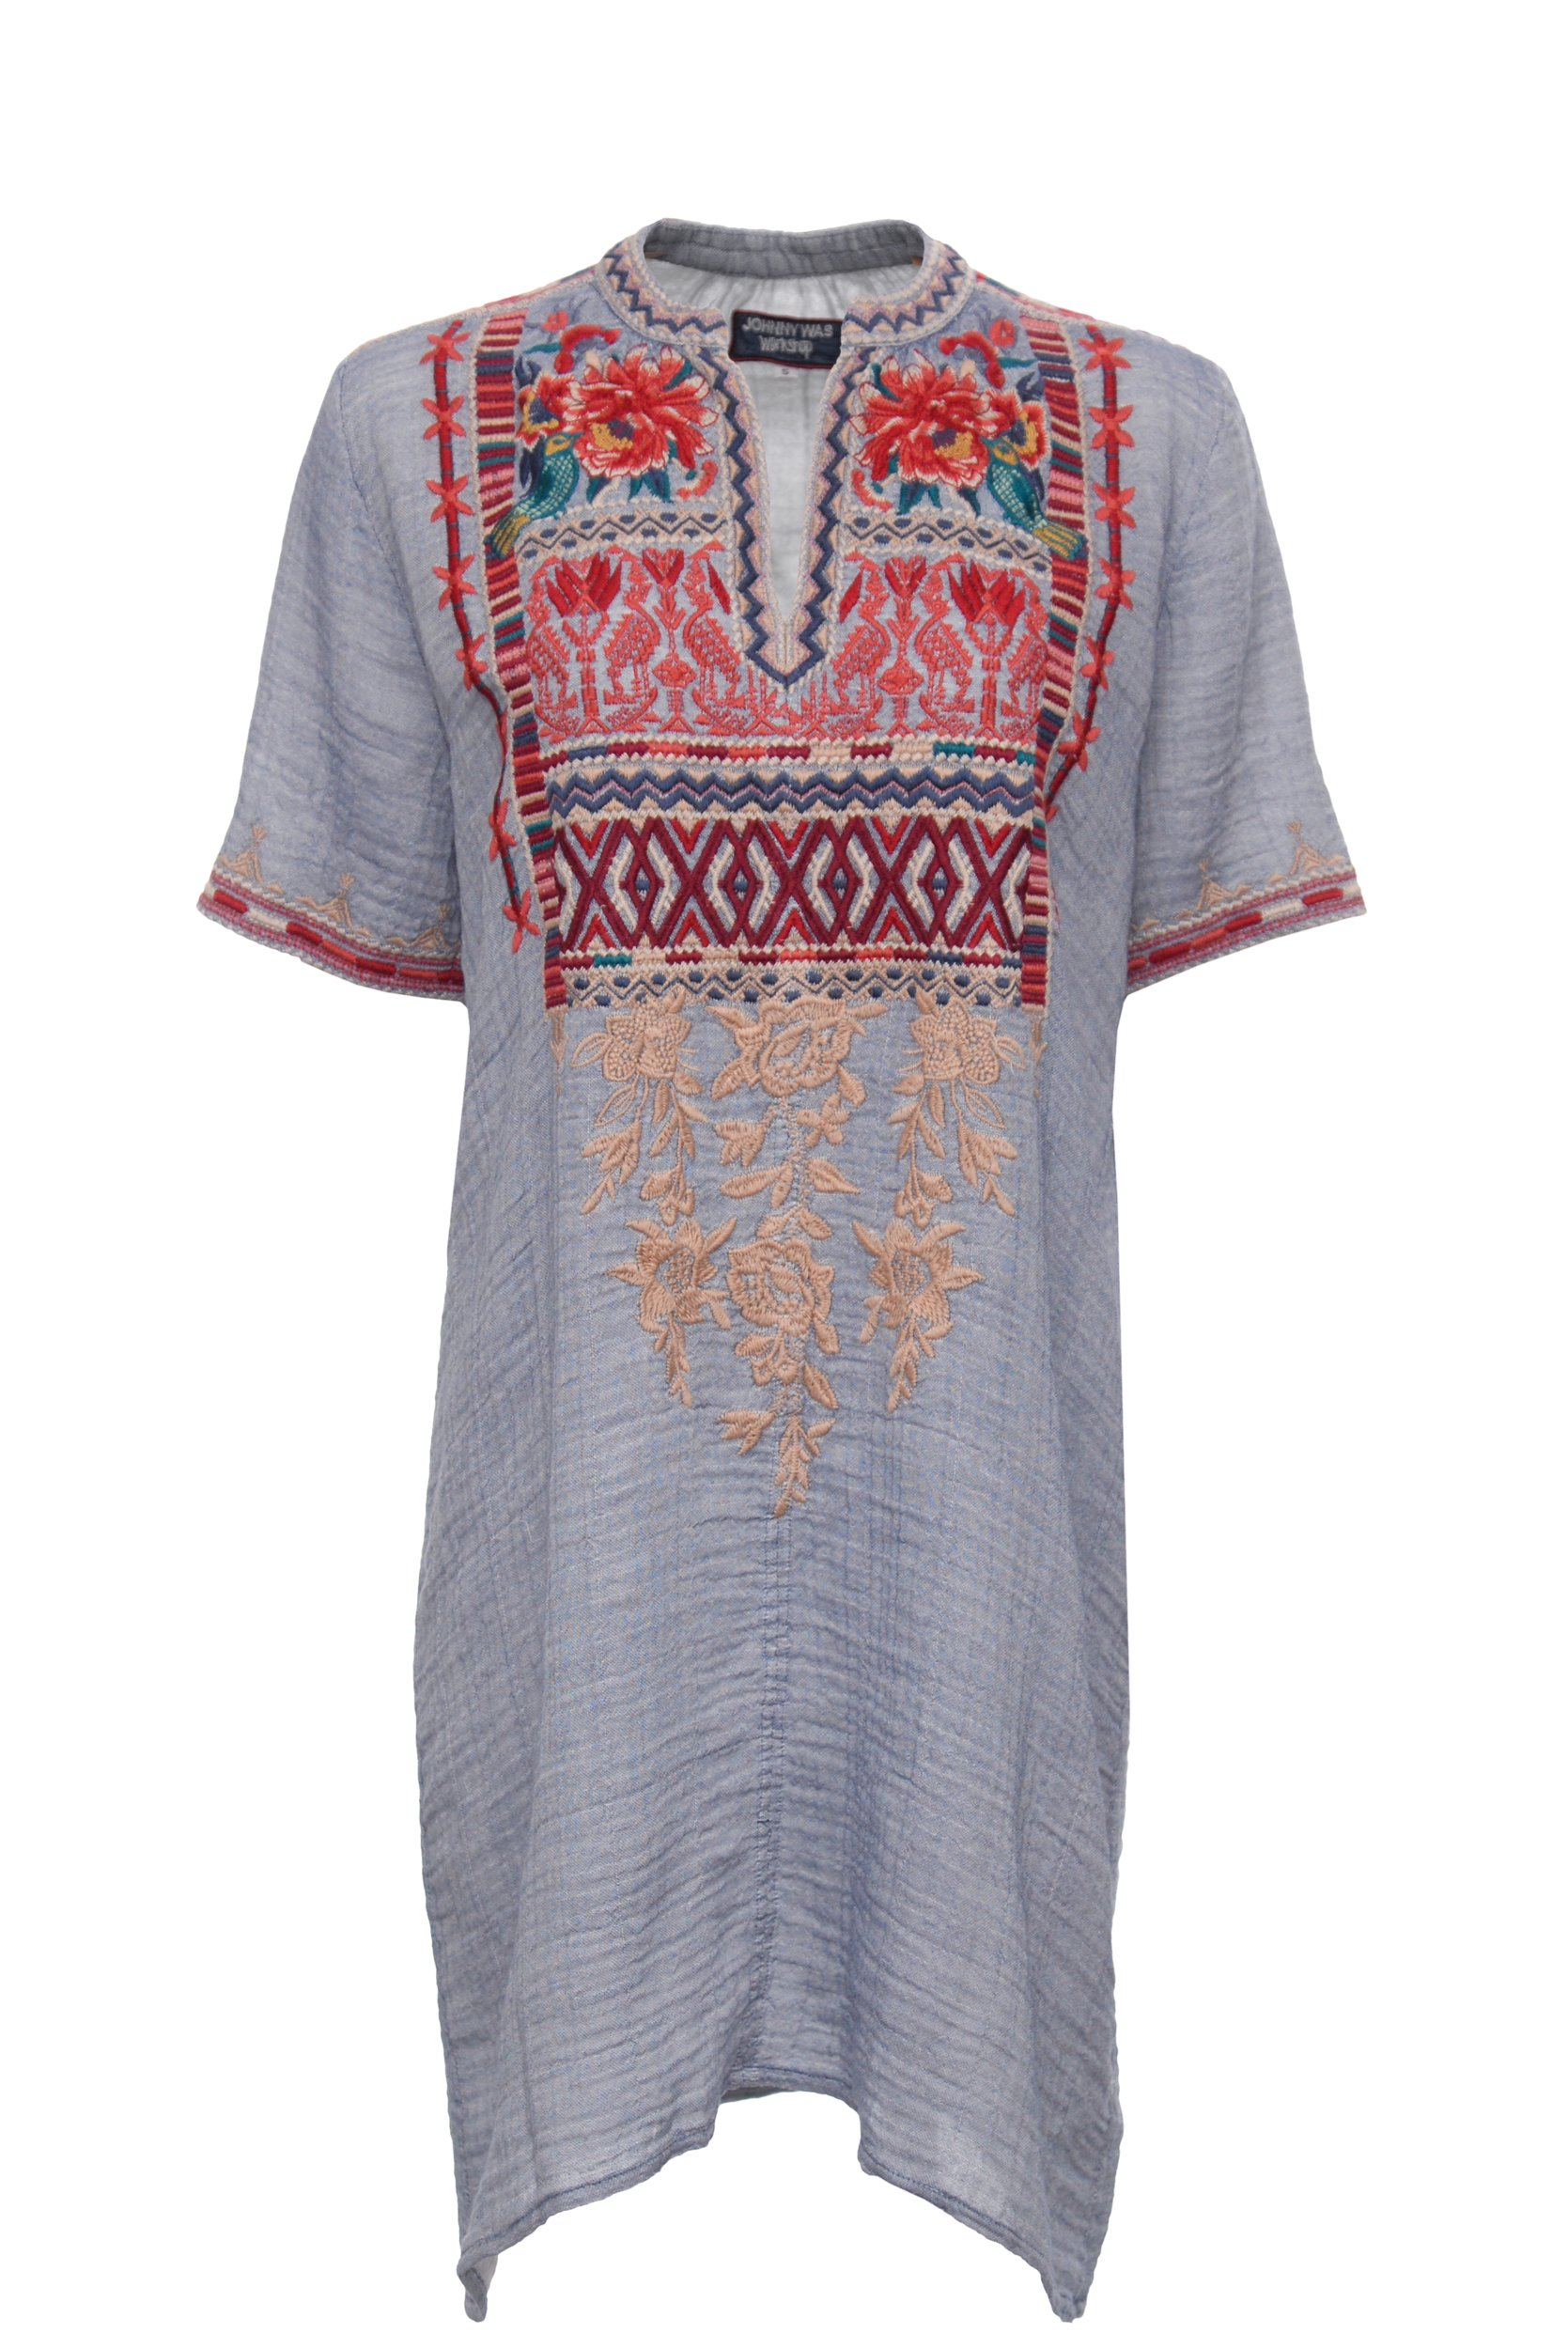 Johnny Was 3J Workshop by Veronica Easy Tunic Dress (Large)